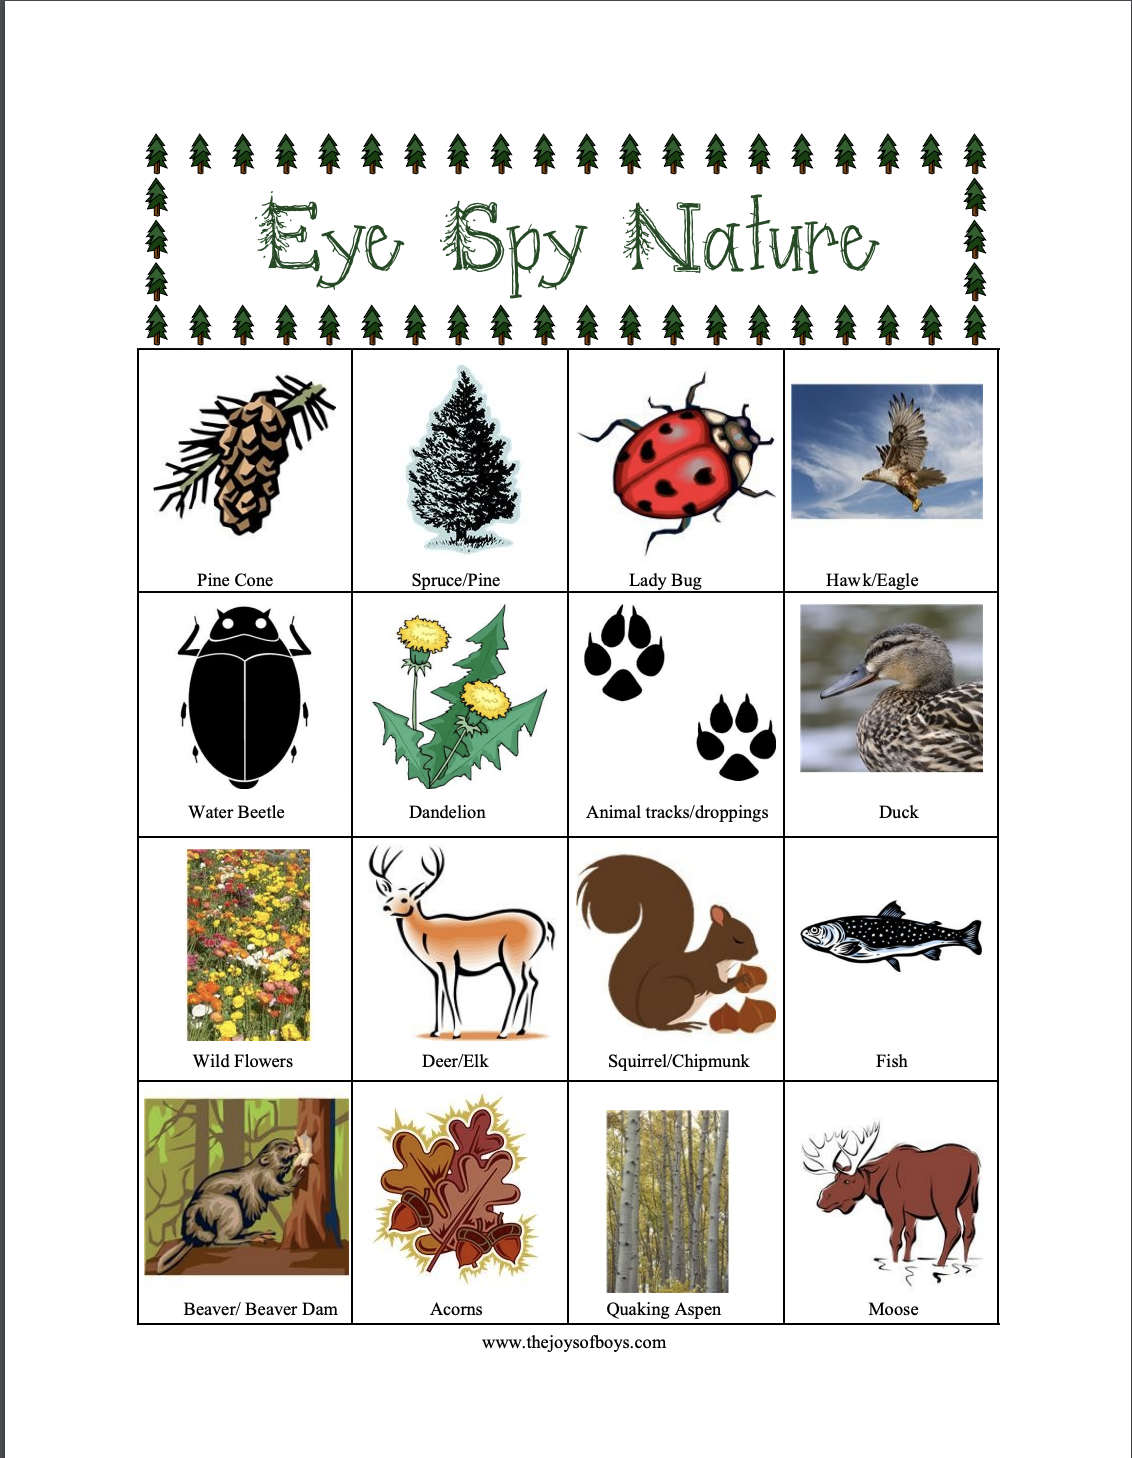 Eye-Spy Nature Scavenger Hunt